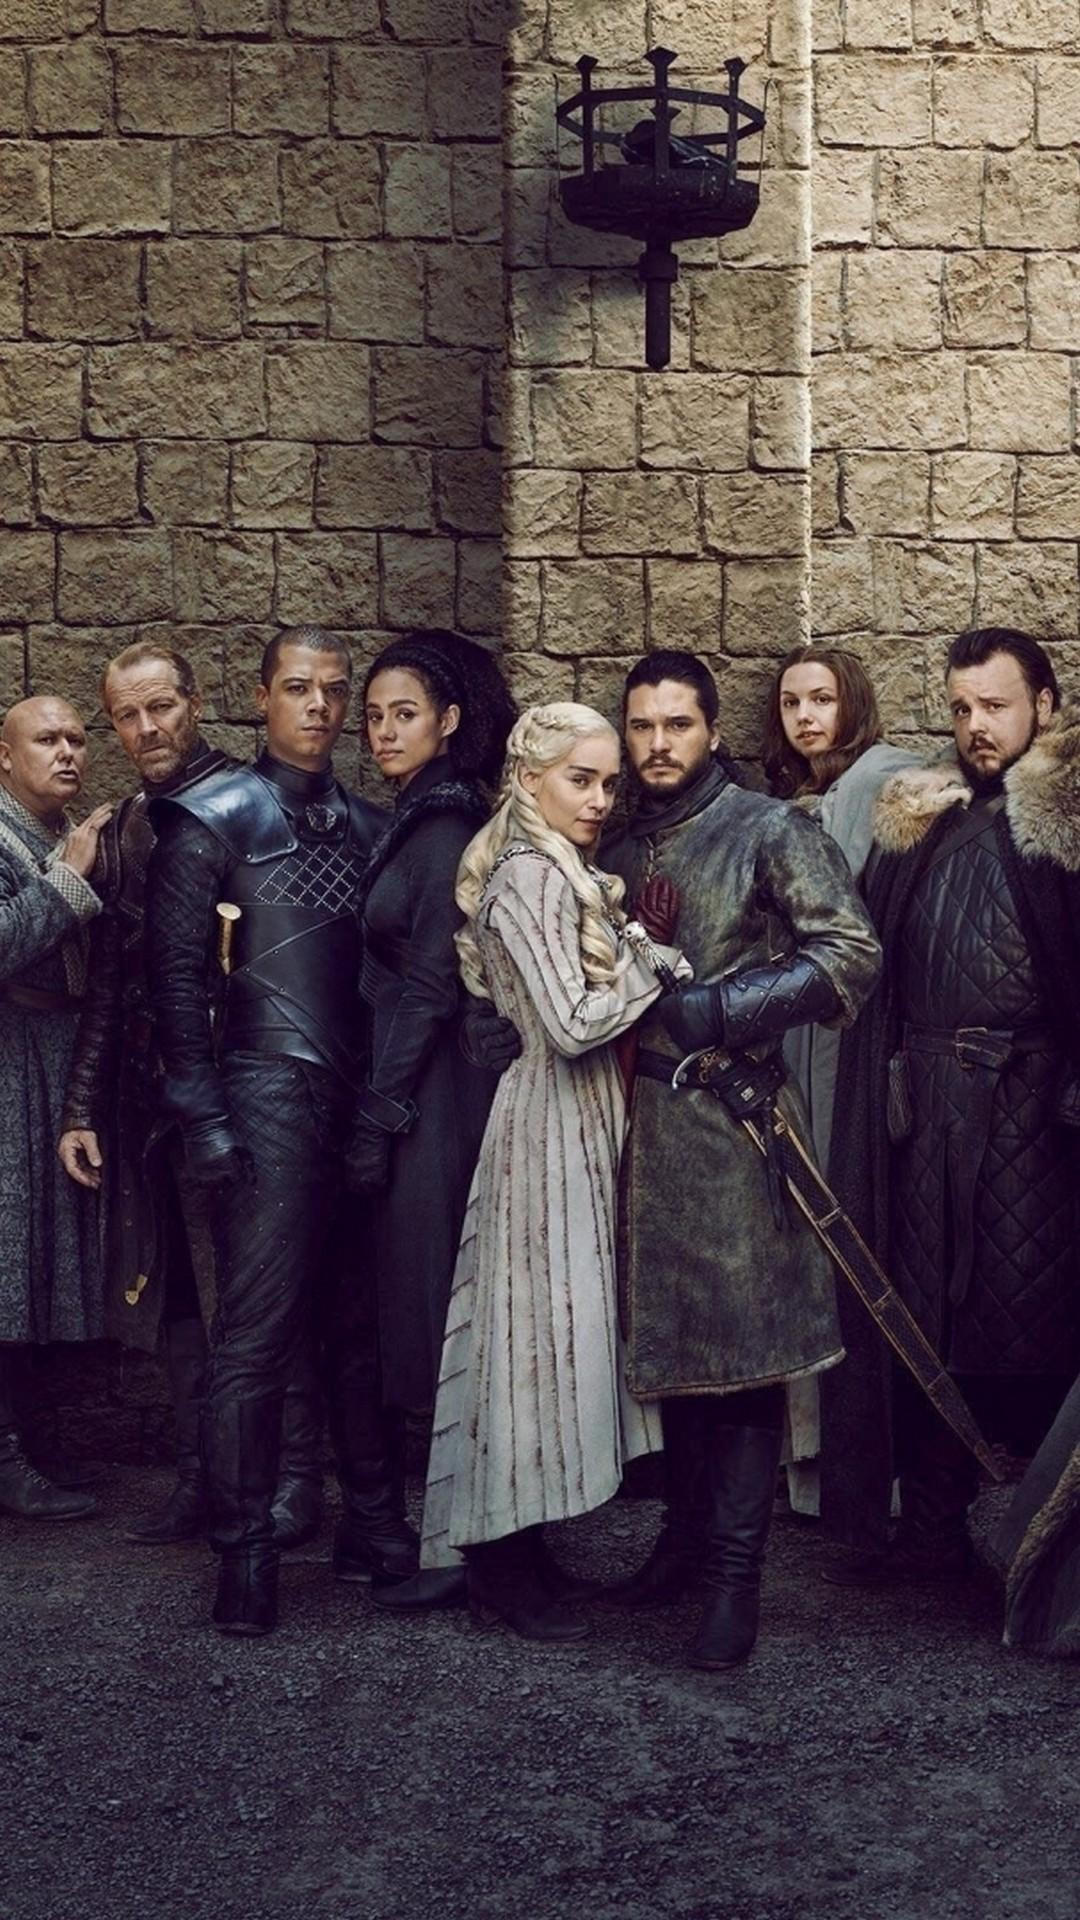 Game Of Thrones 8 Season Iphone Wallpaper With High-resolution - Game Of Thrones 8 , HD Wallpaper & Backgrounds